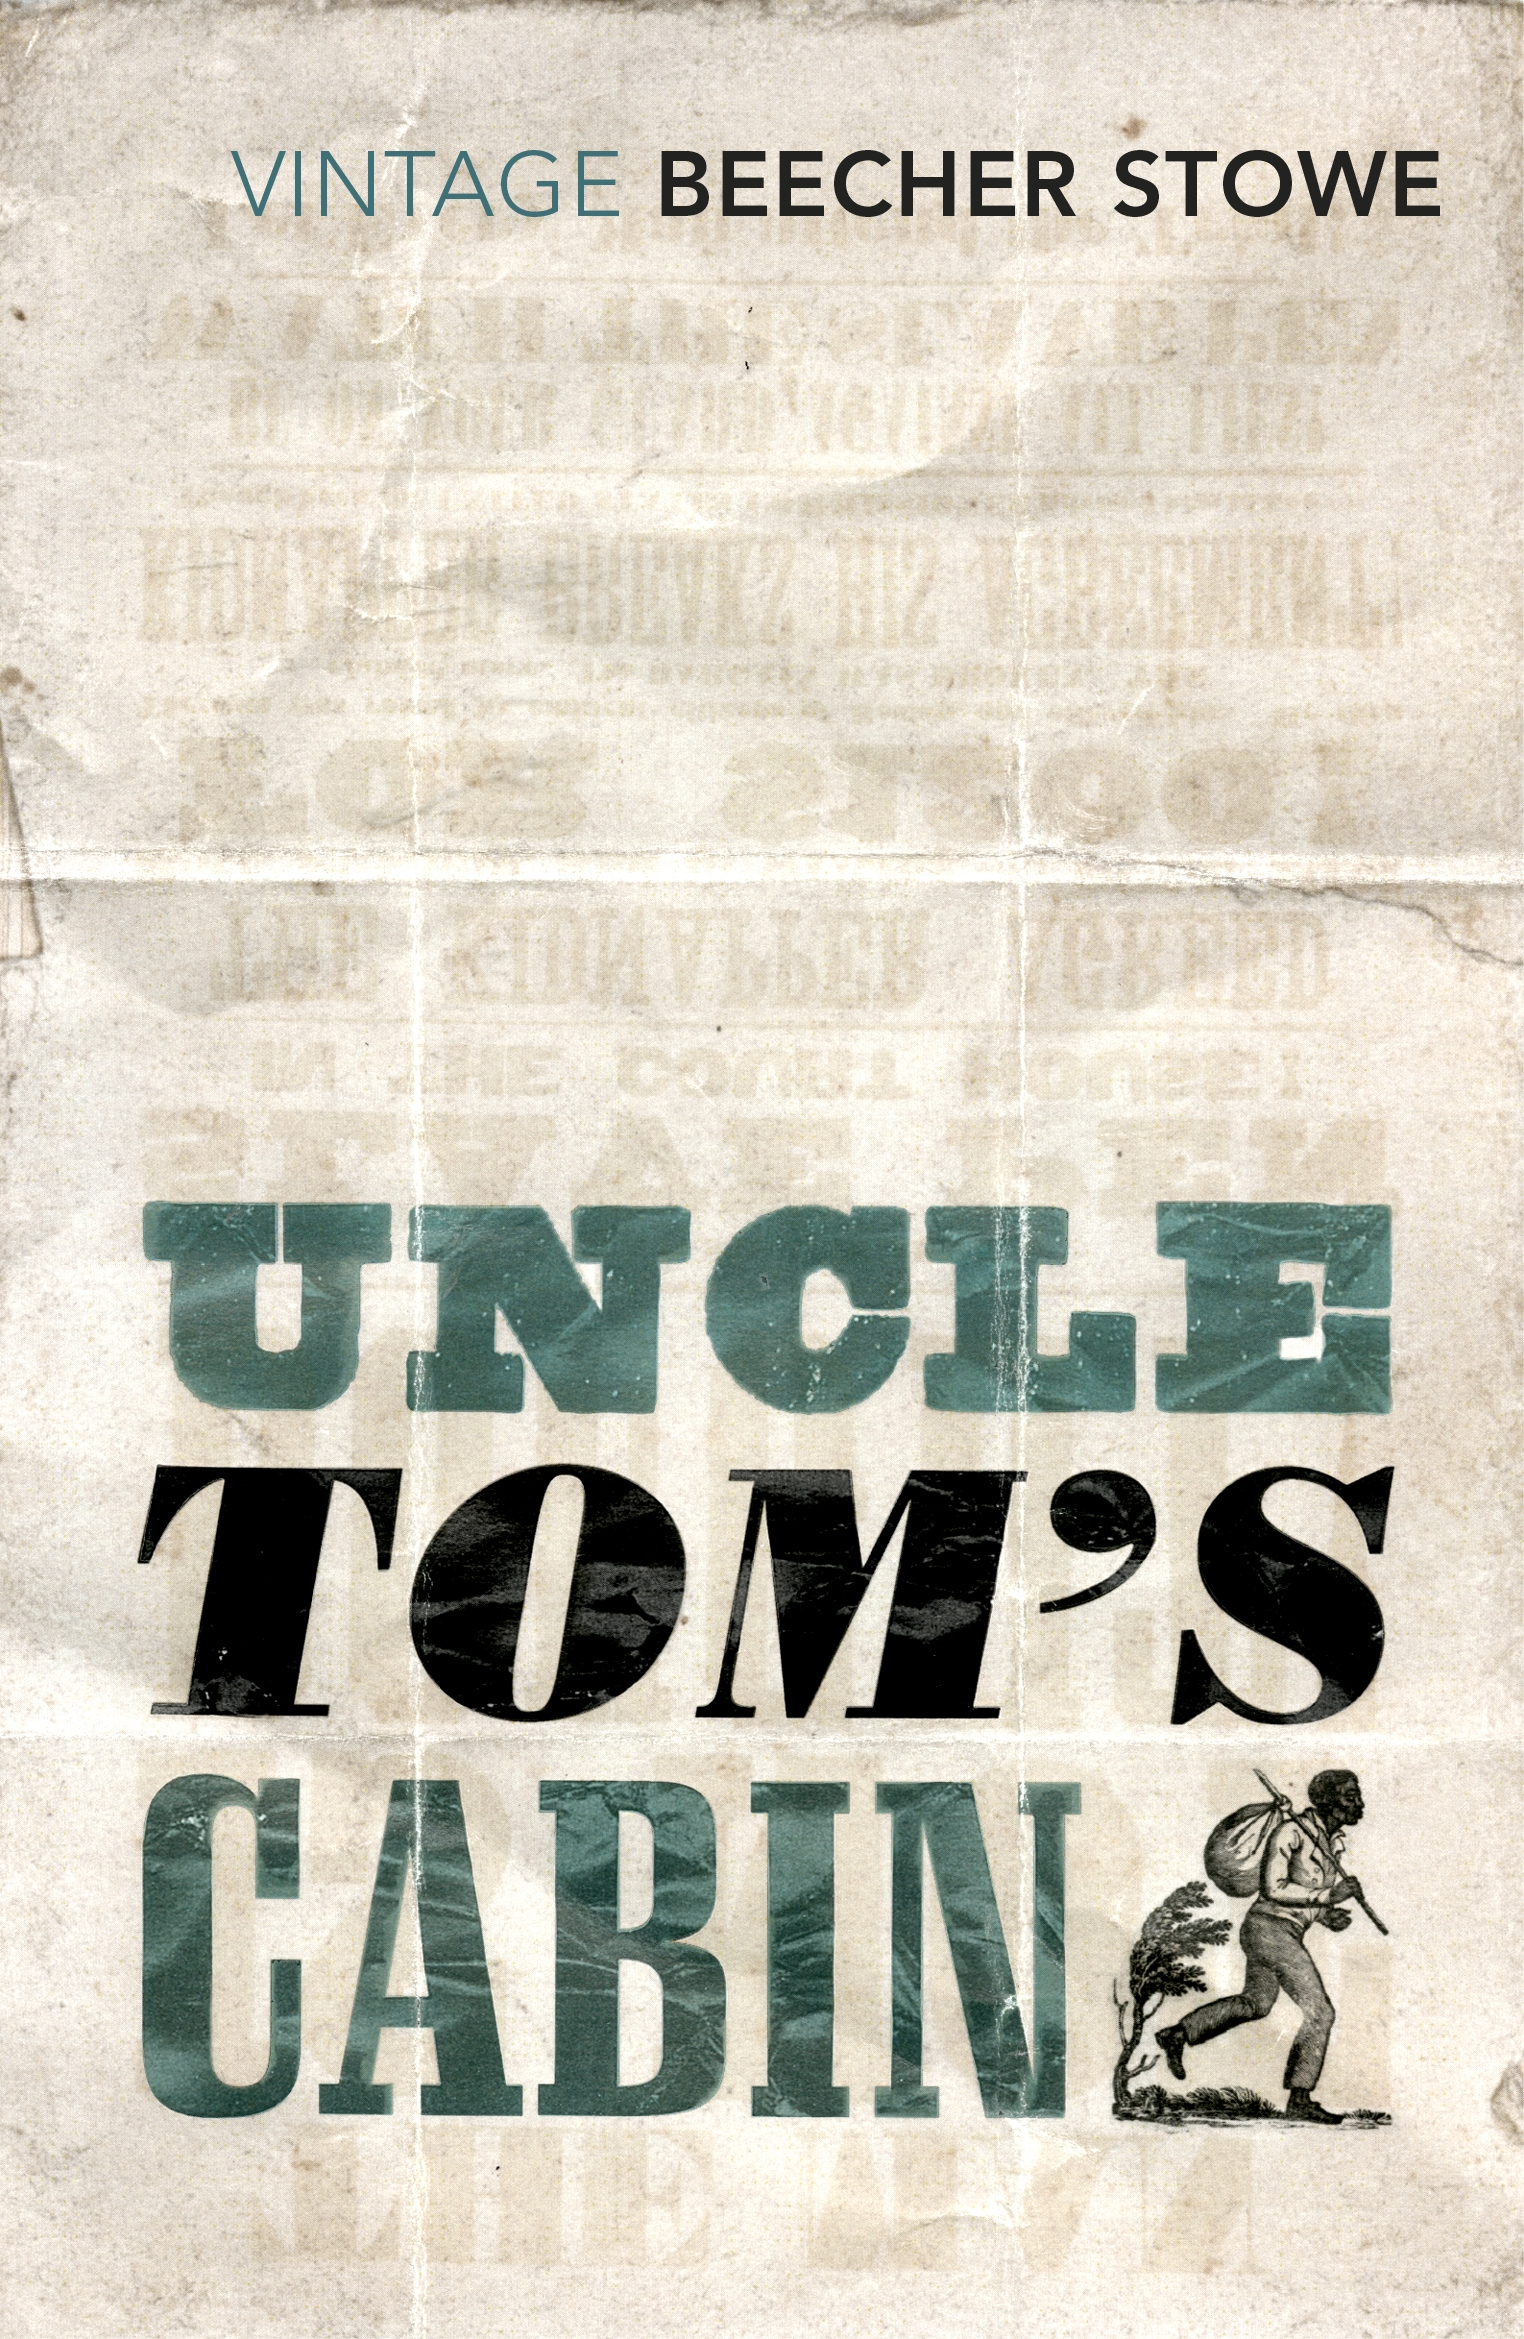 an analysis of the main character in the novel uncle toms cabin by harriet beecher stowe Uncle tom's cabin is a novel written by harriet beecher stowe in 1952 that helps to show the struggles of slaves during that time period along with interactions with owners both loving and cruel despite this, one theme remains a constant in the book: love conquers all.